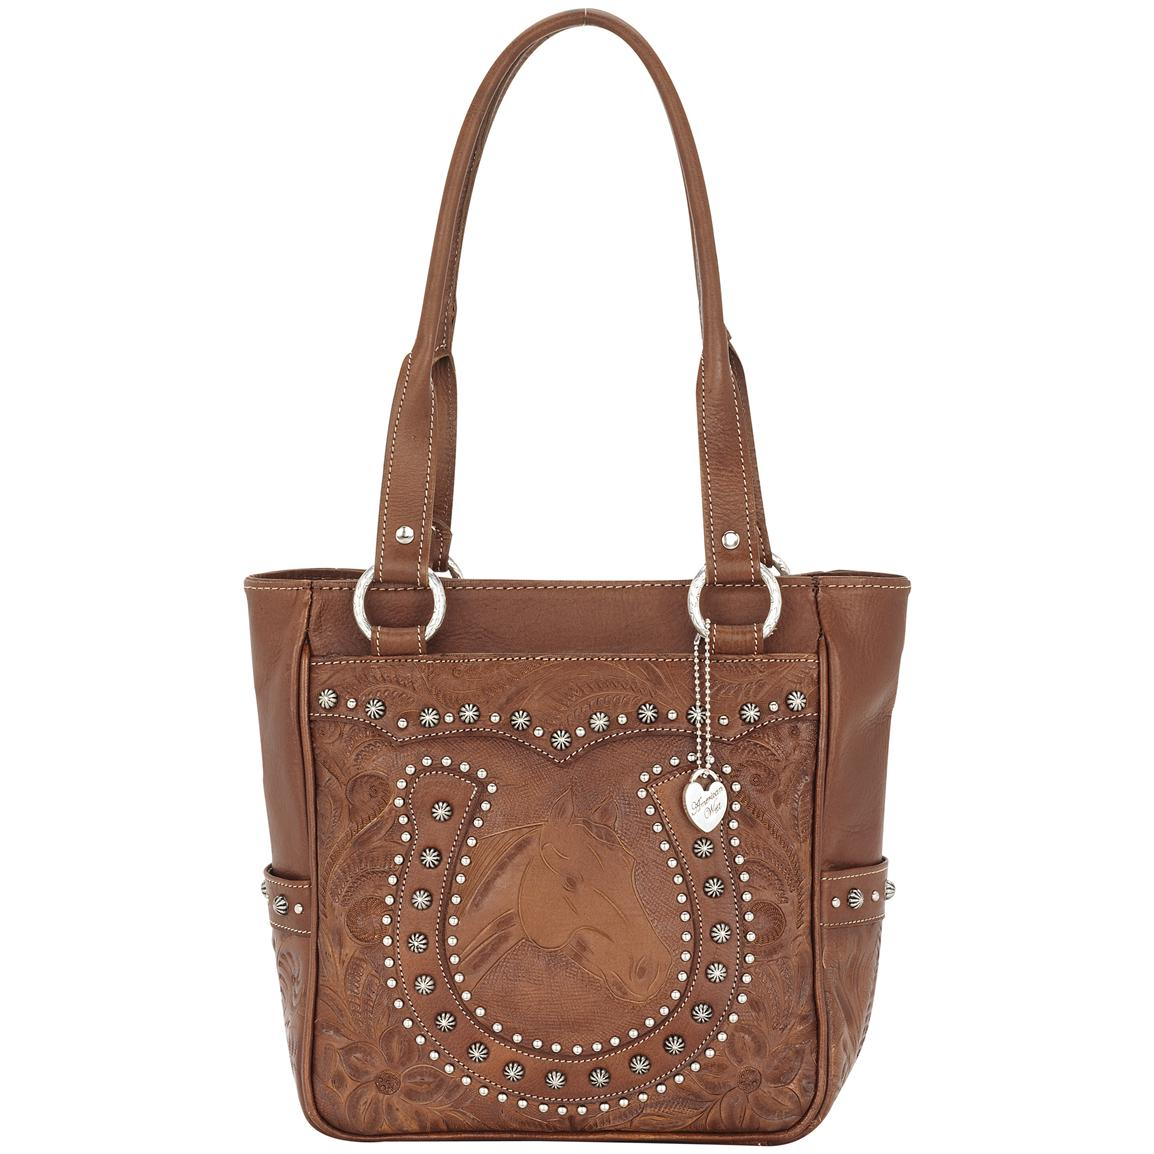 American West® Everyday Cowgirl Totes Collection Hand-Tooled Leather Zip-Top Horseshoe Tote Bag